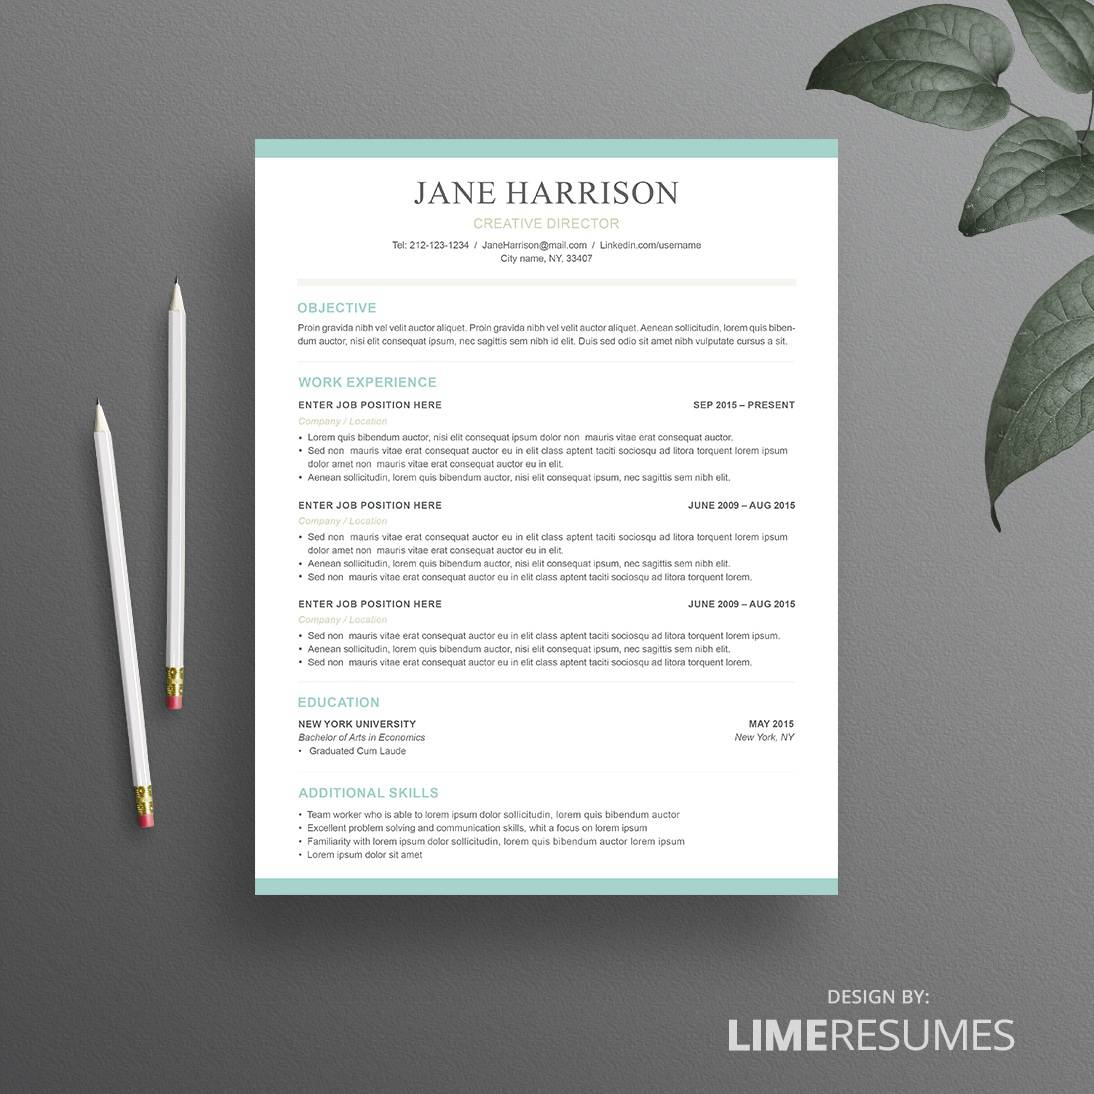 Is There A Resume Template In Microsoft Word 2007 Word Resume Template Microsoft Word Resume Templates